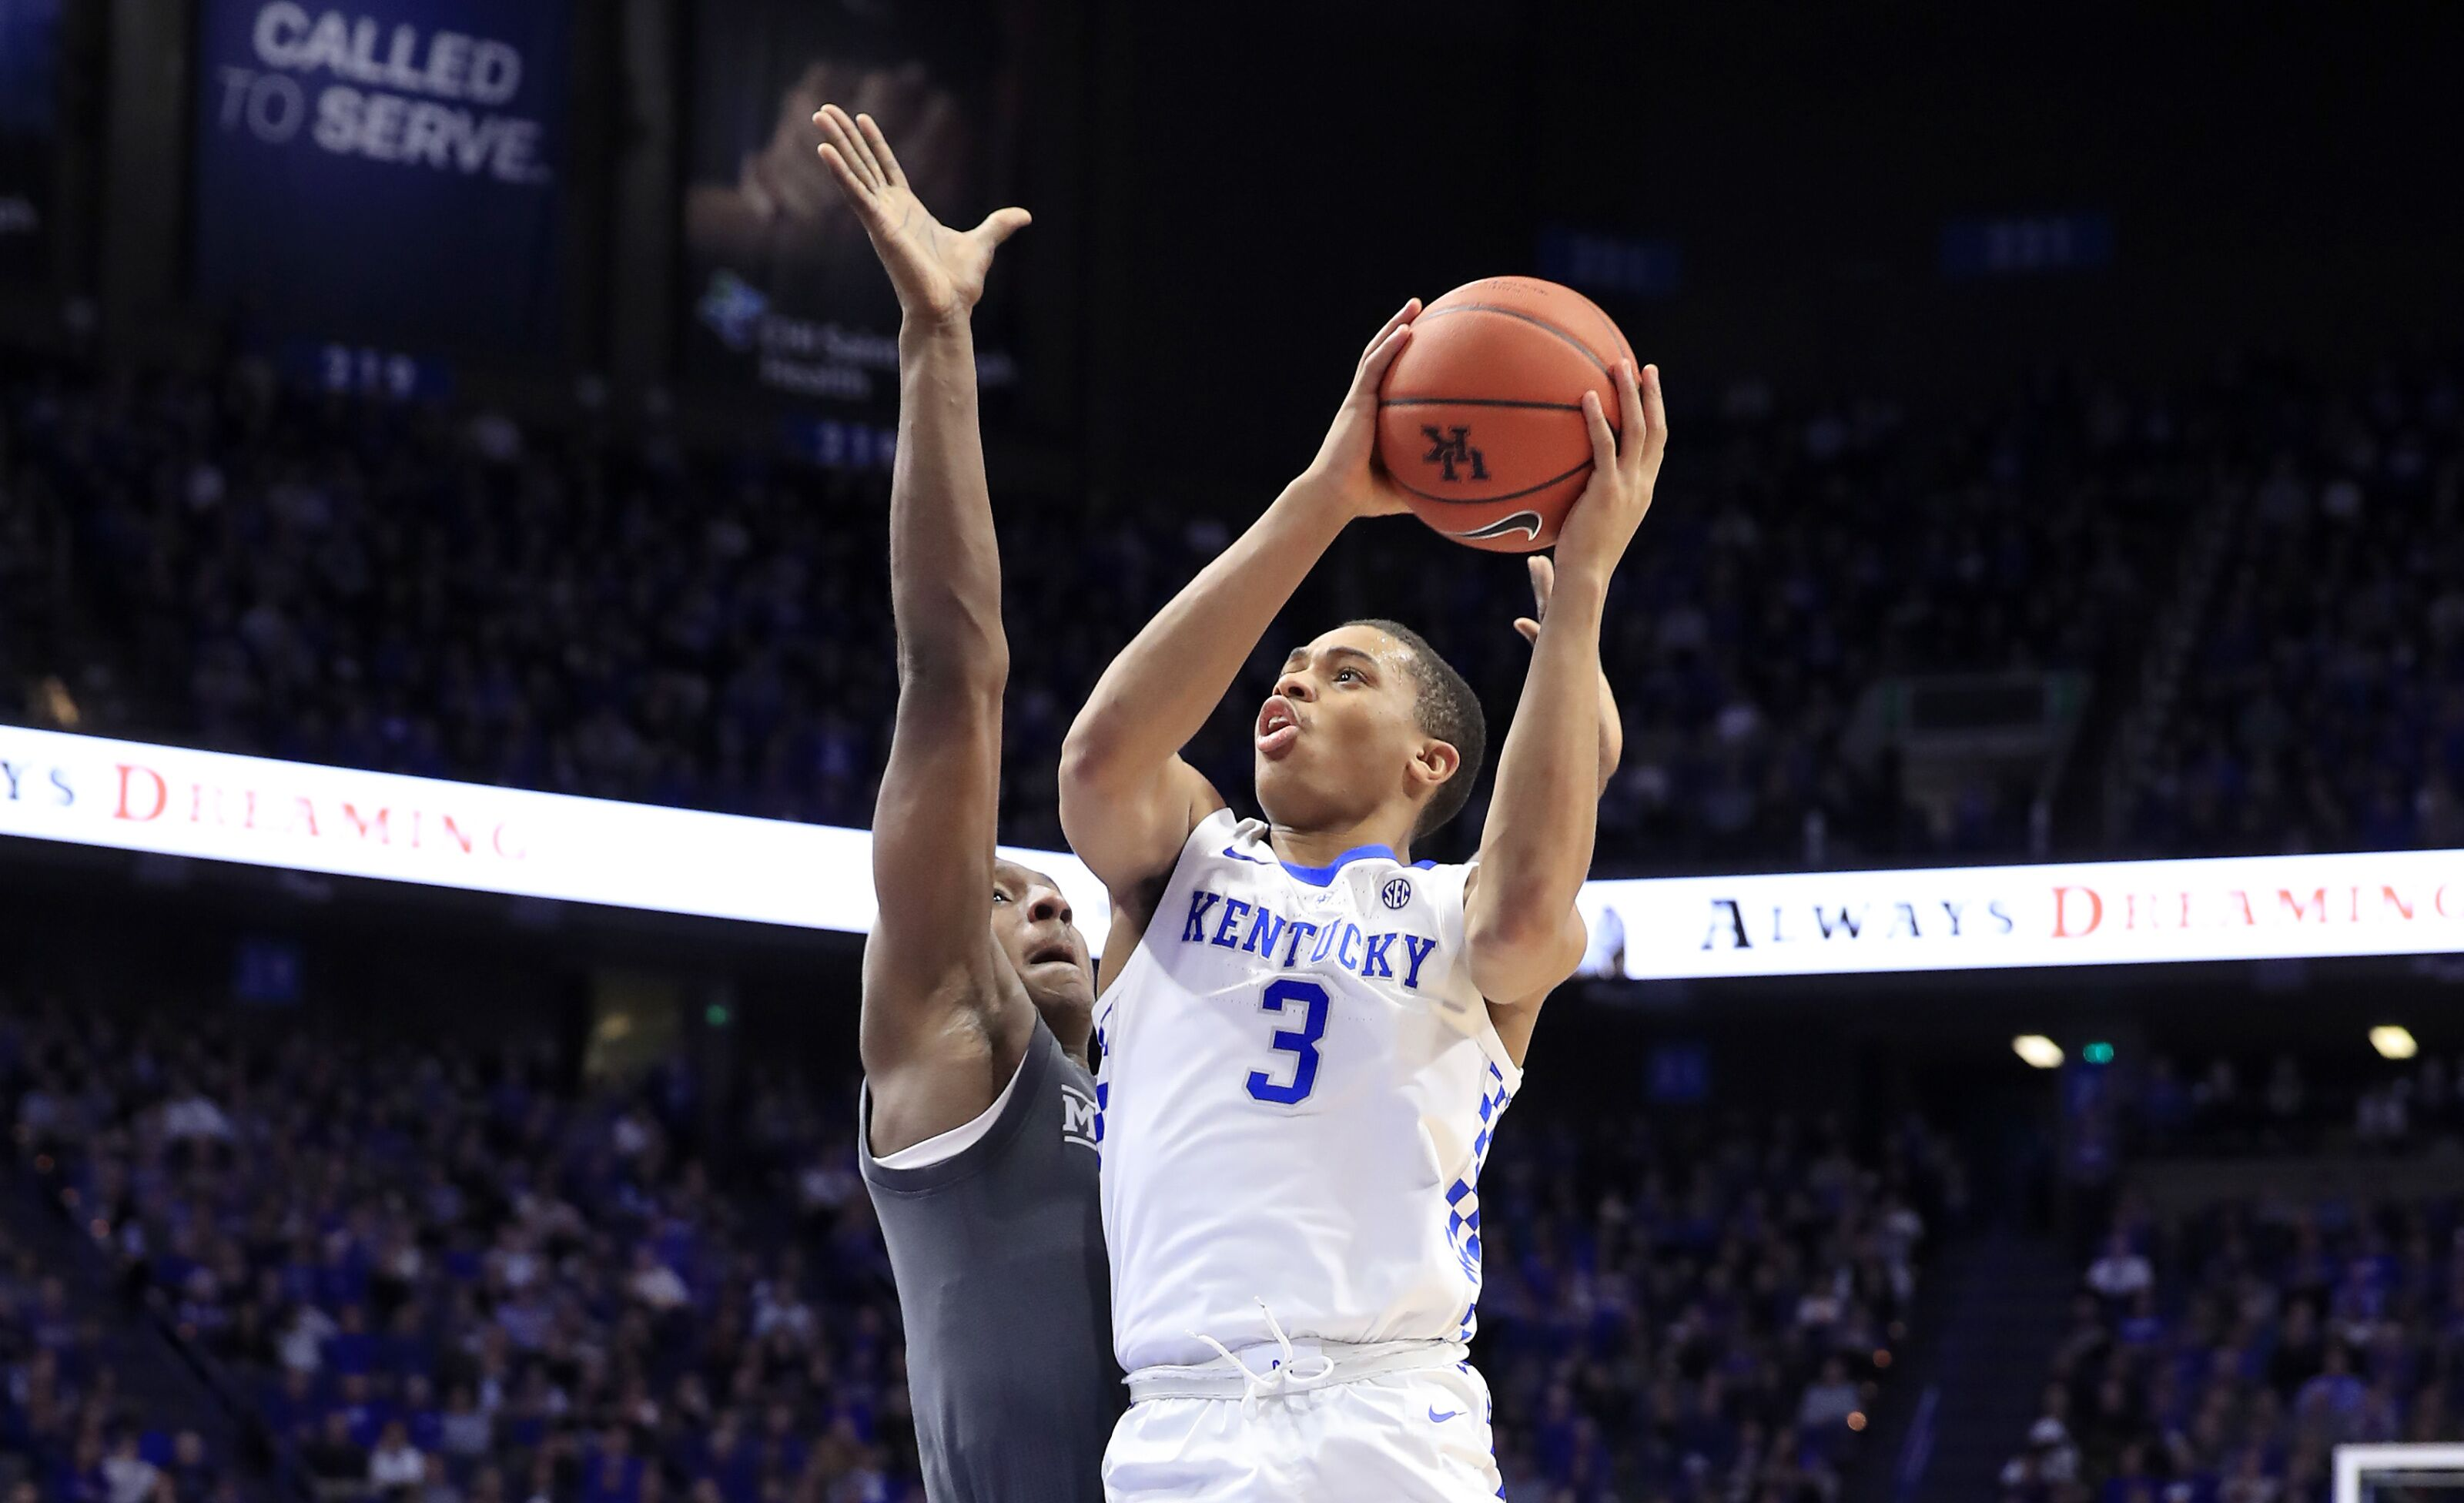 Kentucky Wildcats Basketball 2018 Sec Matchups Revealed: NCAA Basketball: Preview Of The 2018-19 Big 12/SEC Challenge